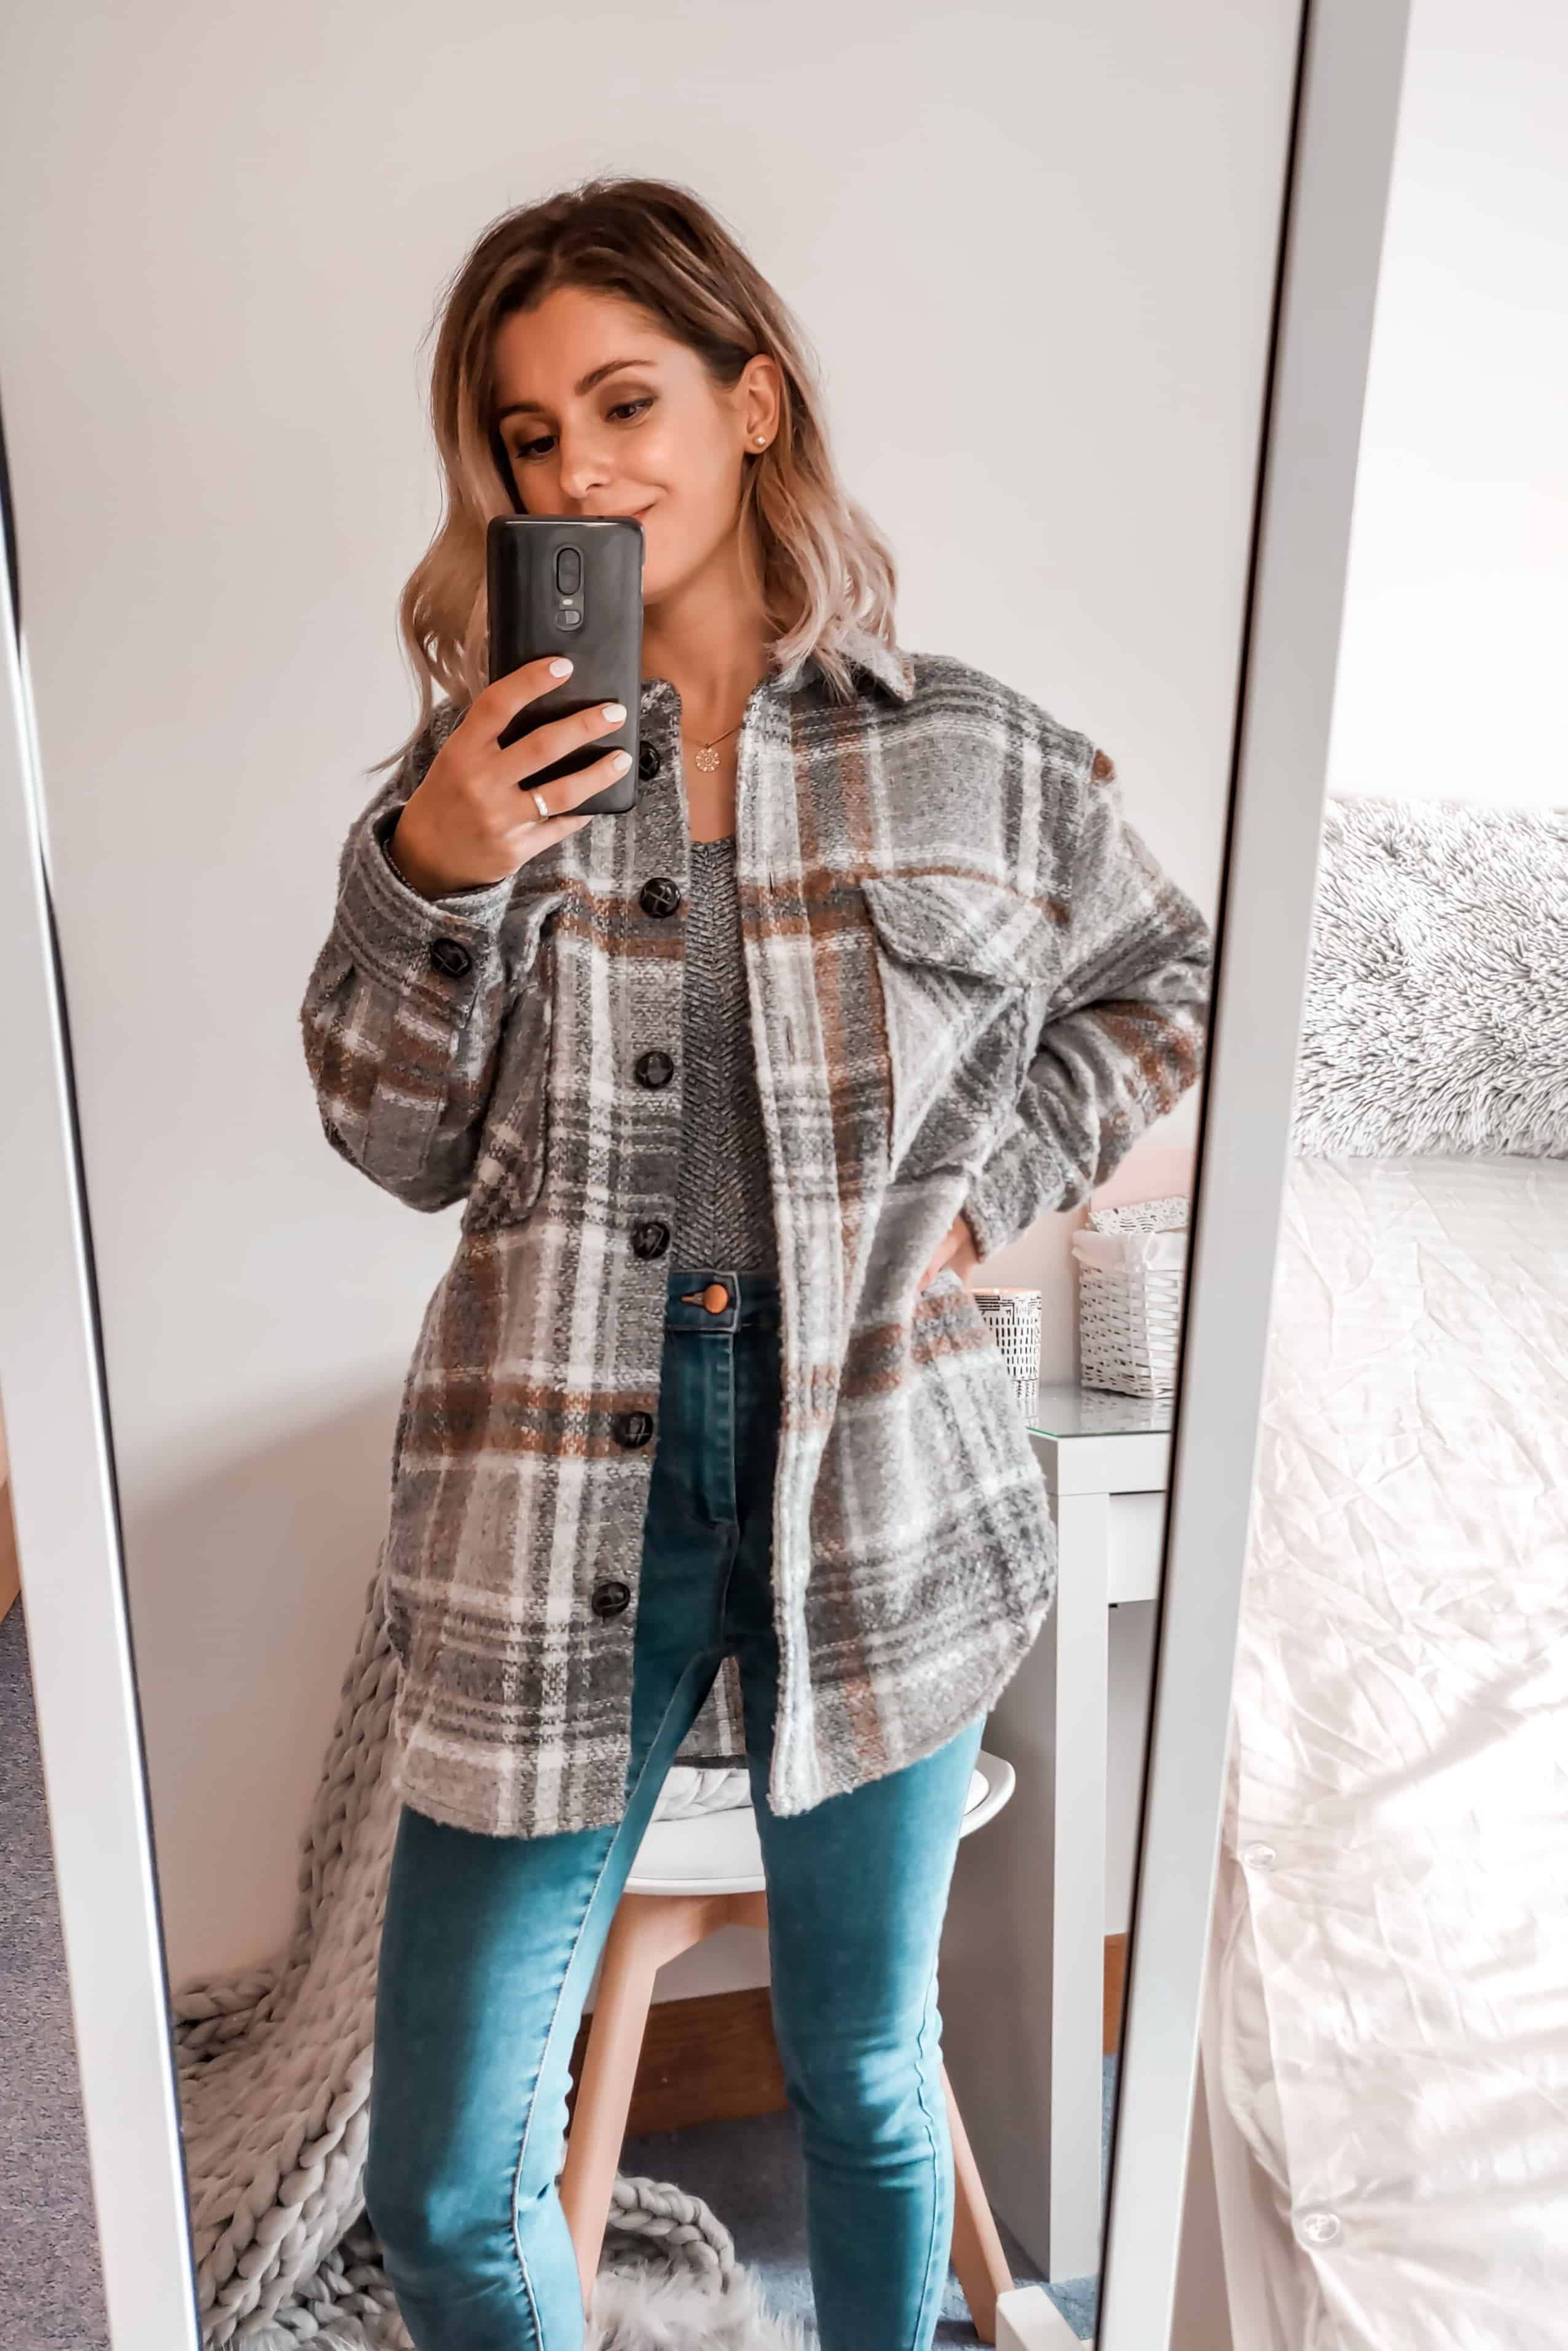 Primark checked grey jacket with jeans outfit